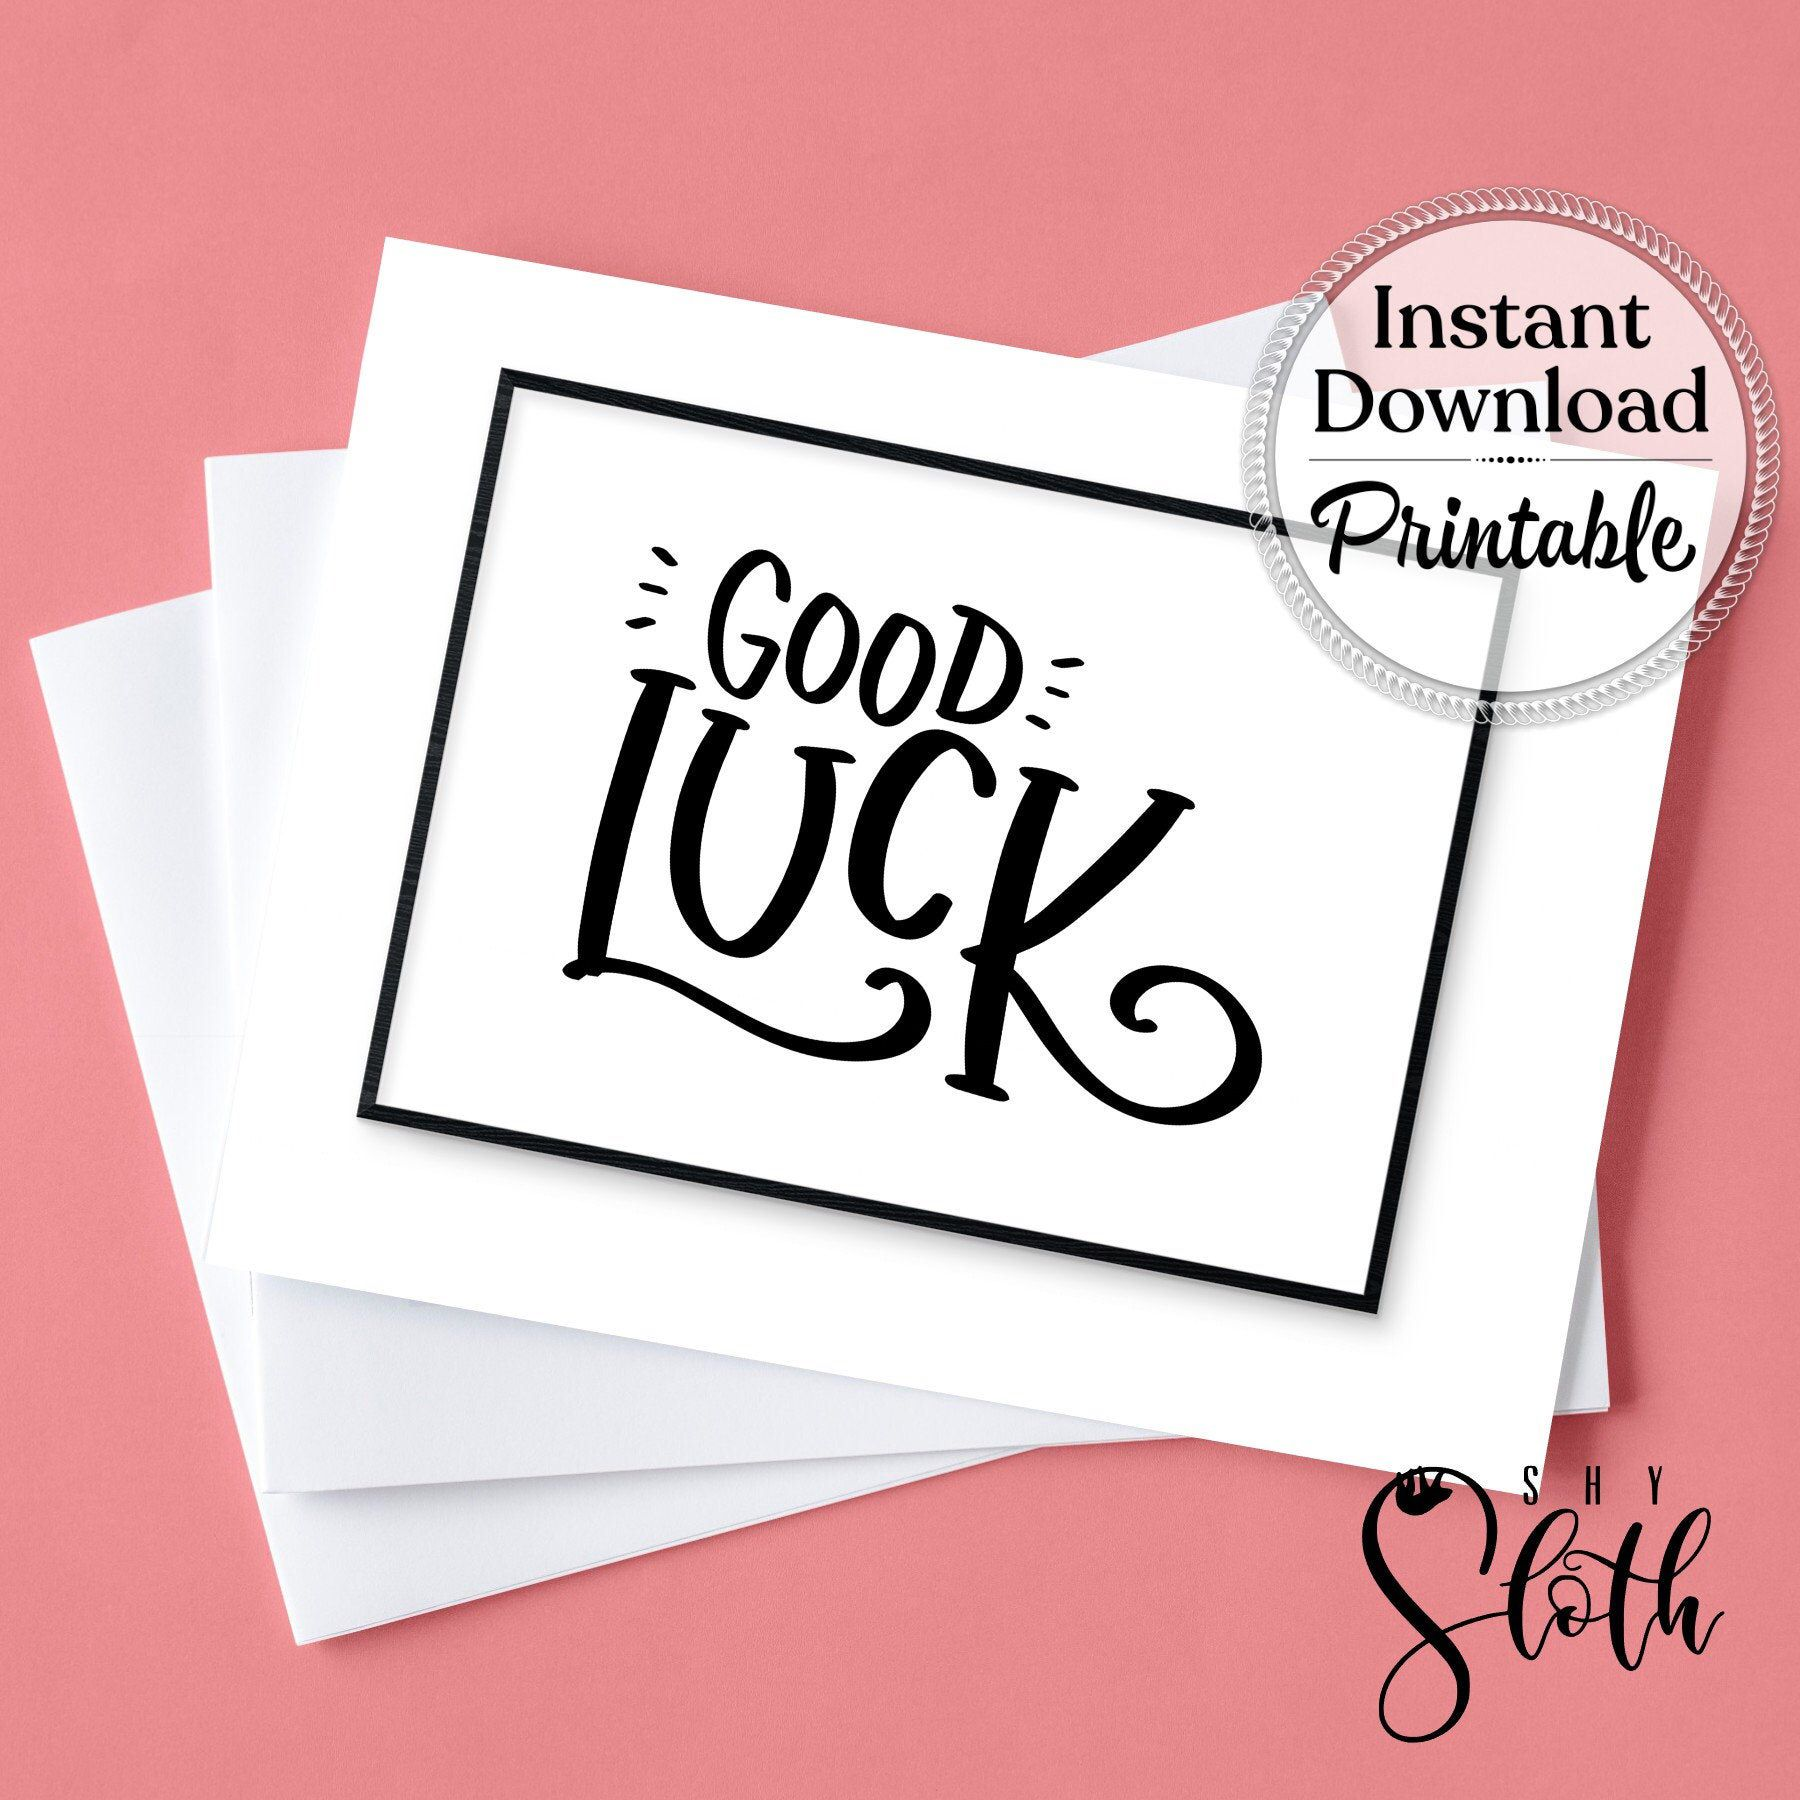 Excited to share this item from my etsy shop good luck